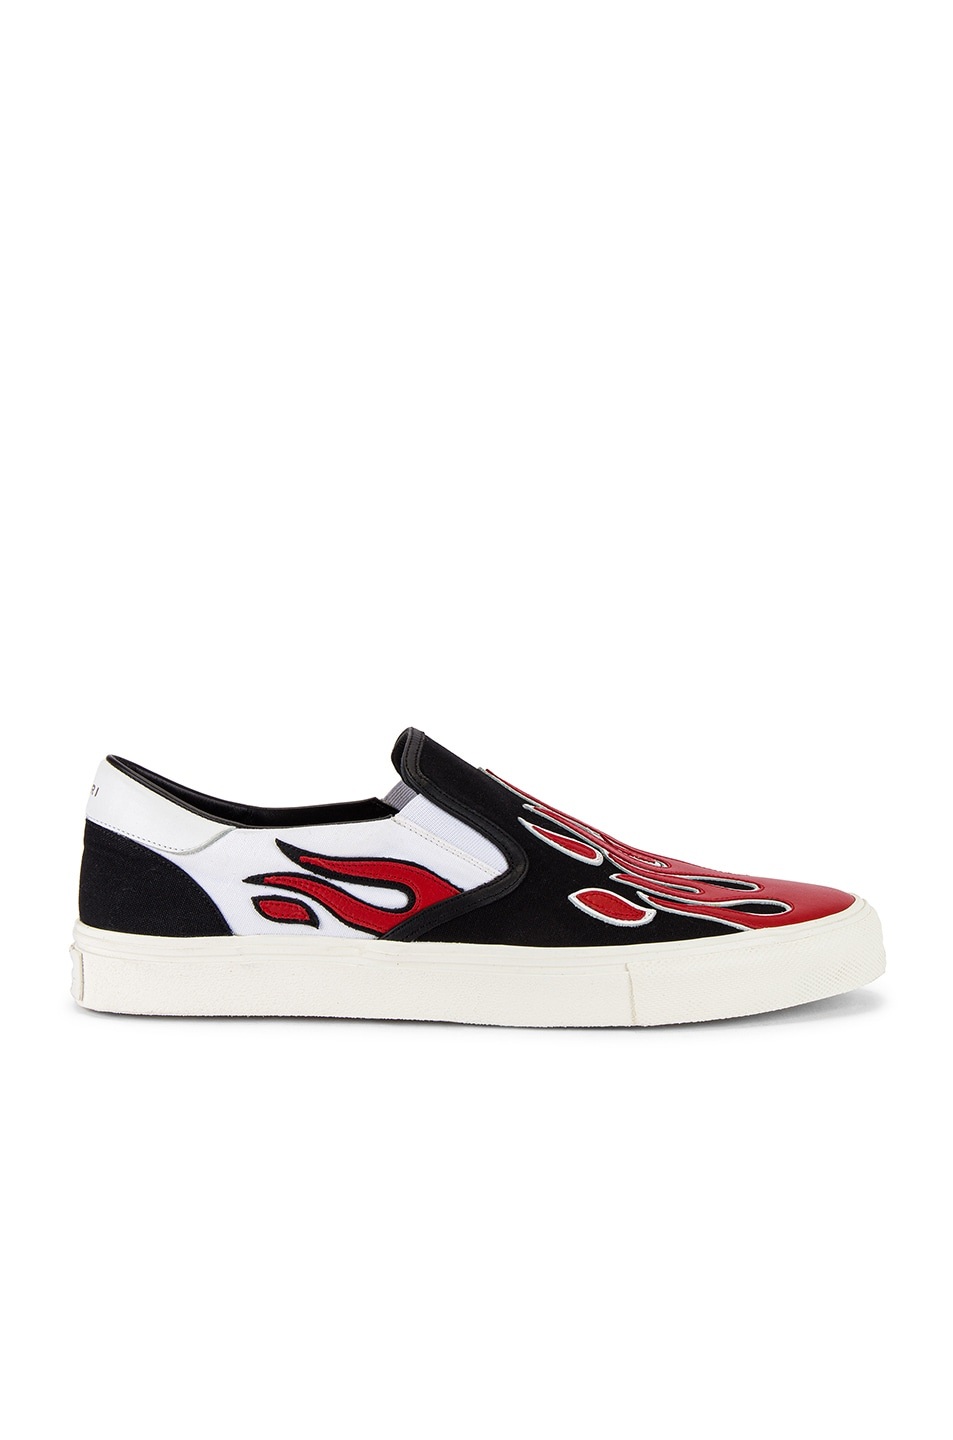 Image 2 of Amiri Flame Slip On in Black & White & Red